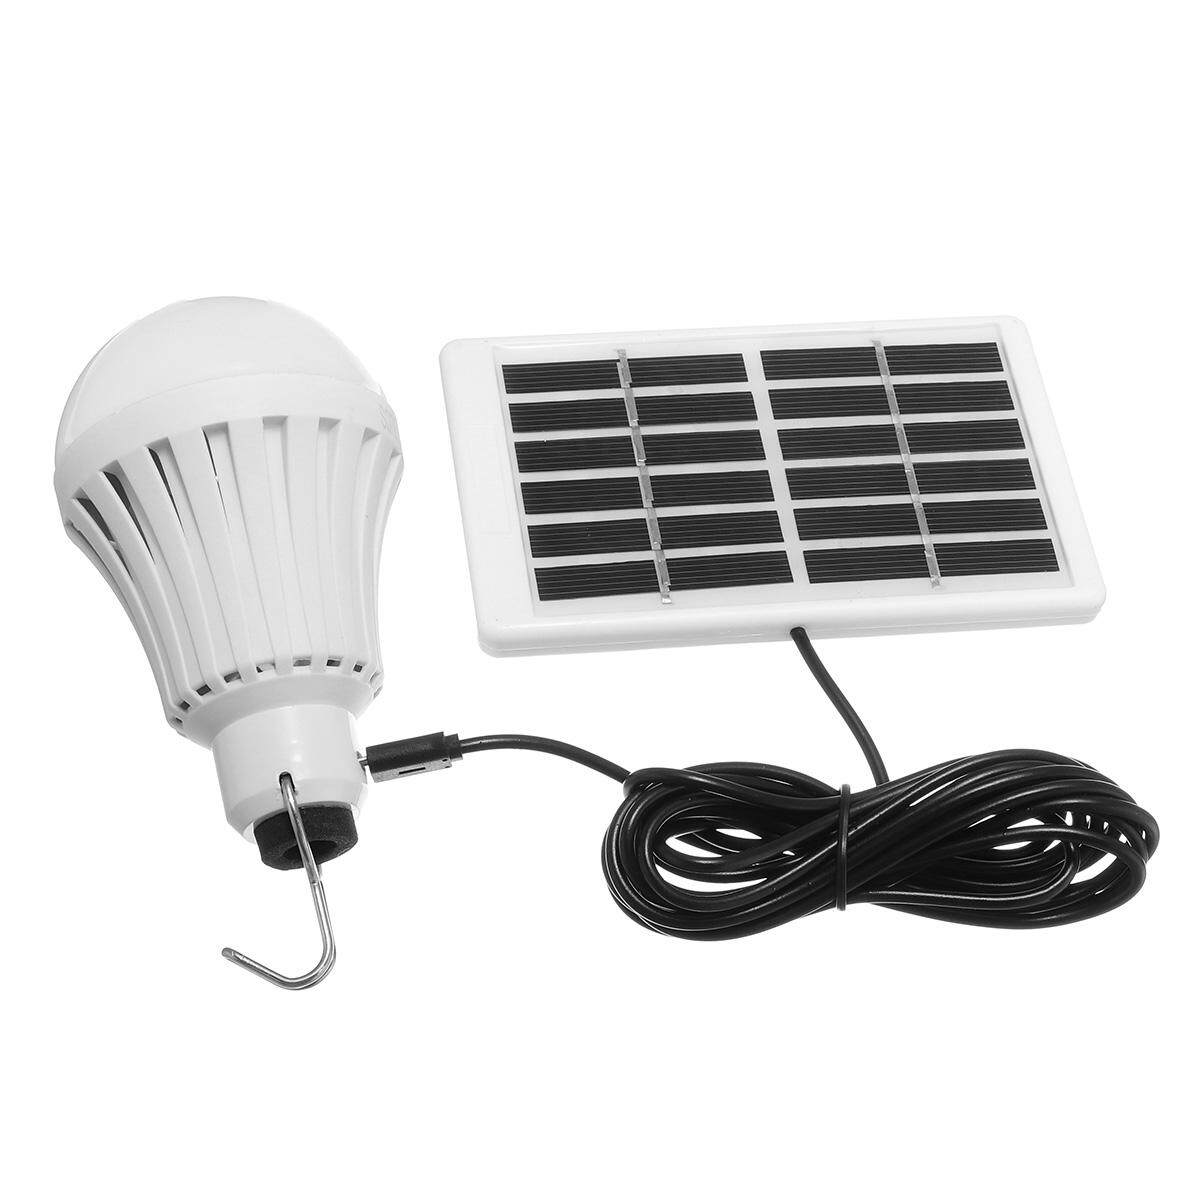 Home Outdoor Lighting Buy At Best Price In Wiring Up Track 30w Solar Panel Led Light Usb Powered Bulb Indoor Camping Emergency Lamp7w